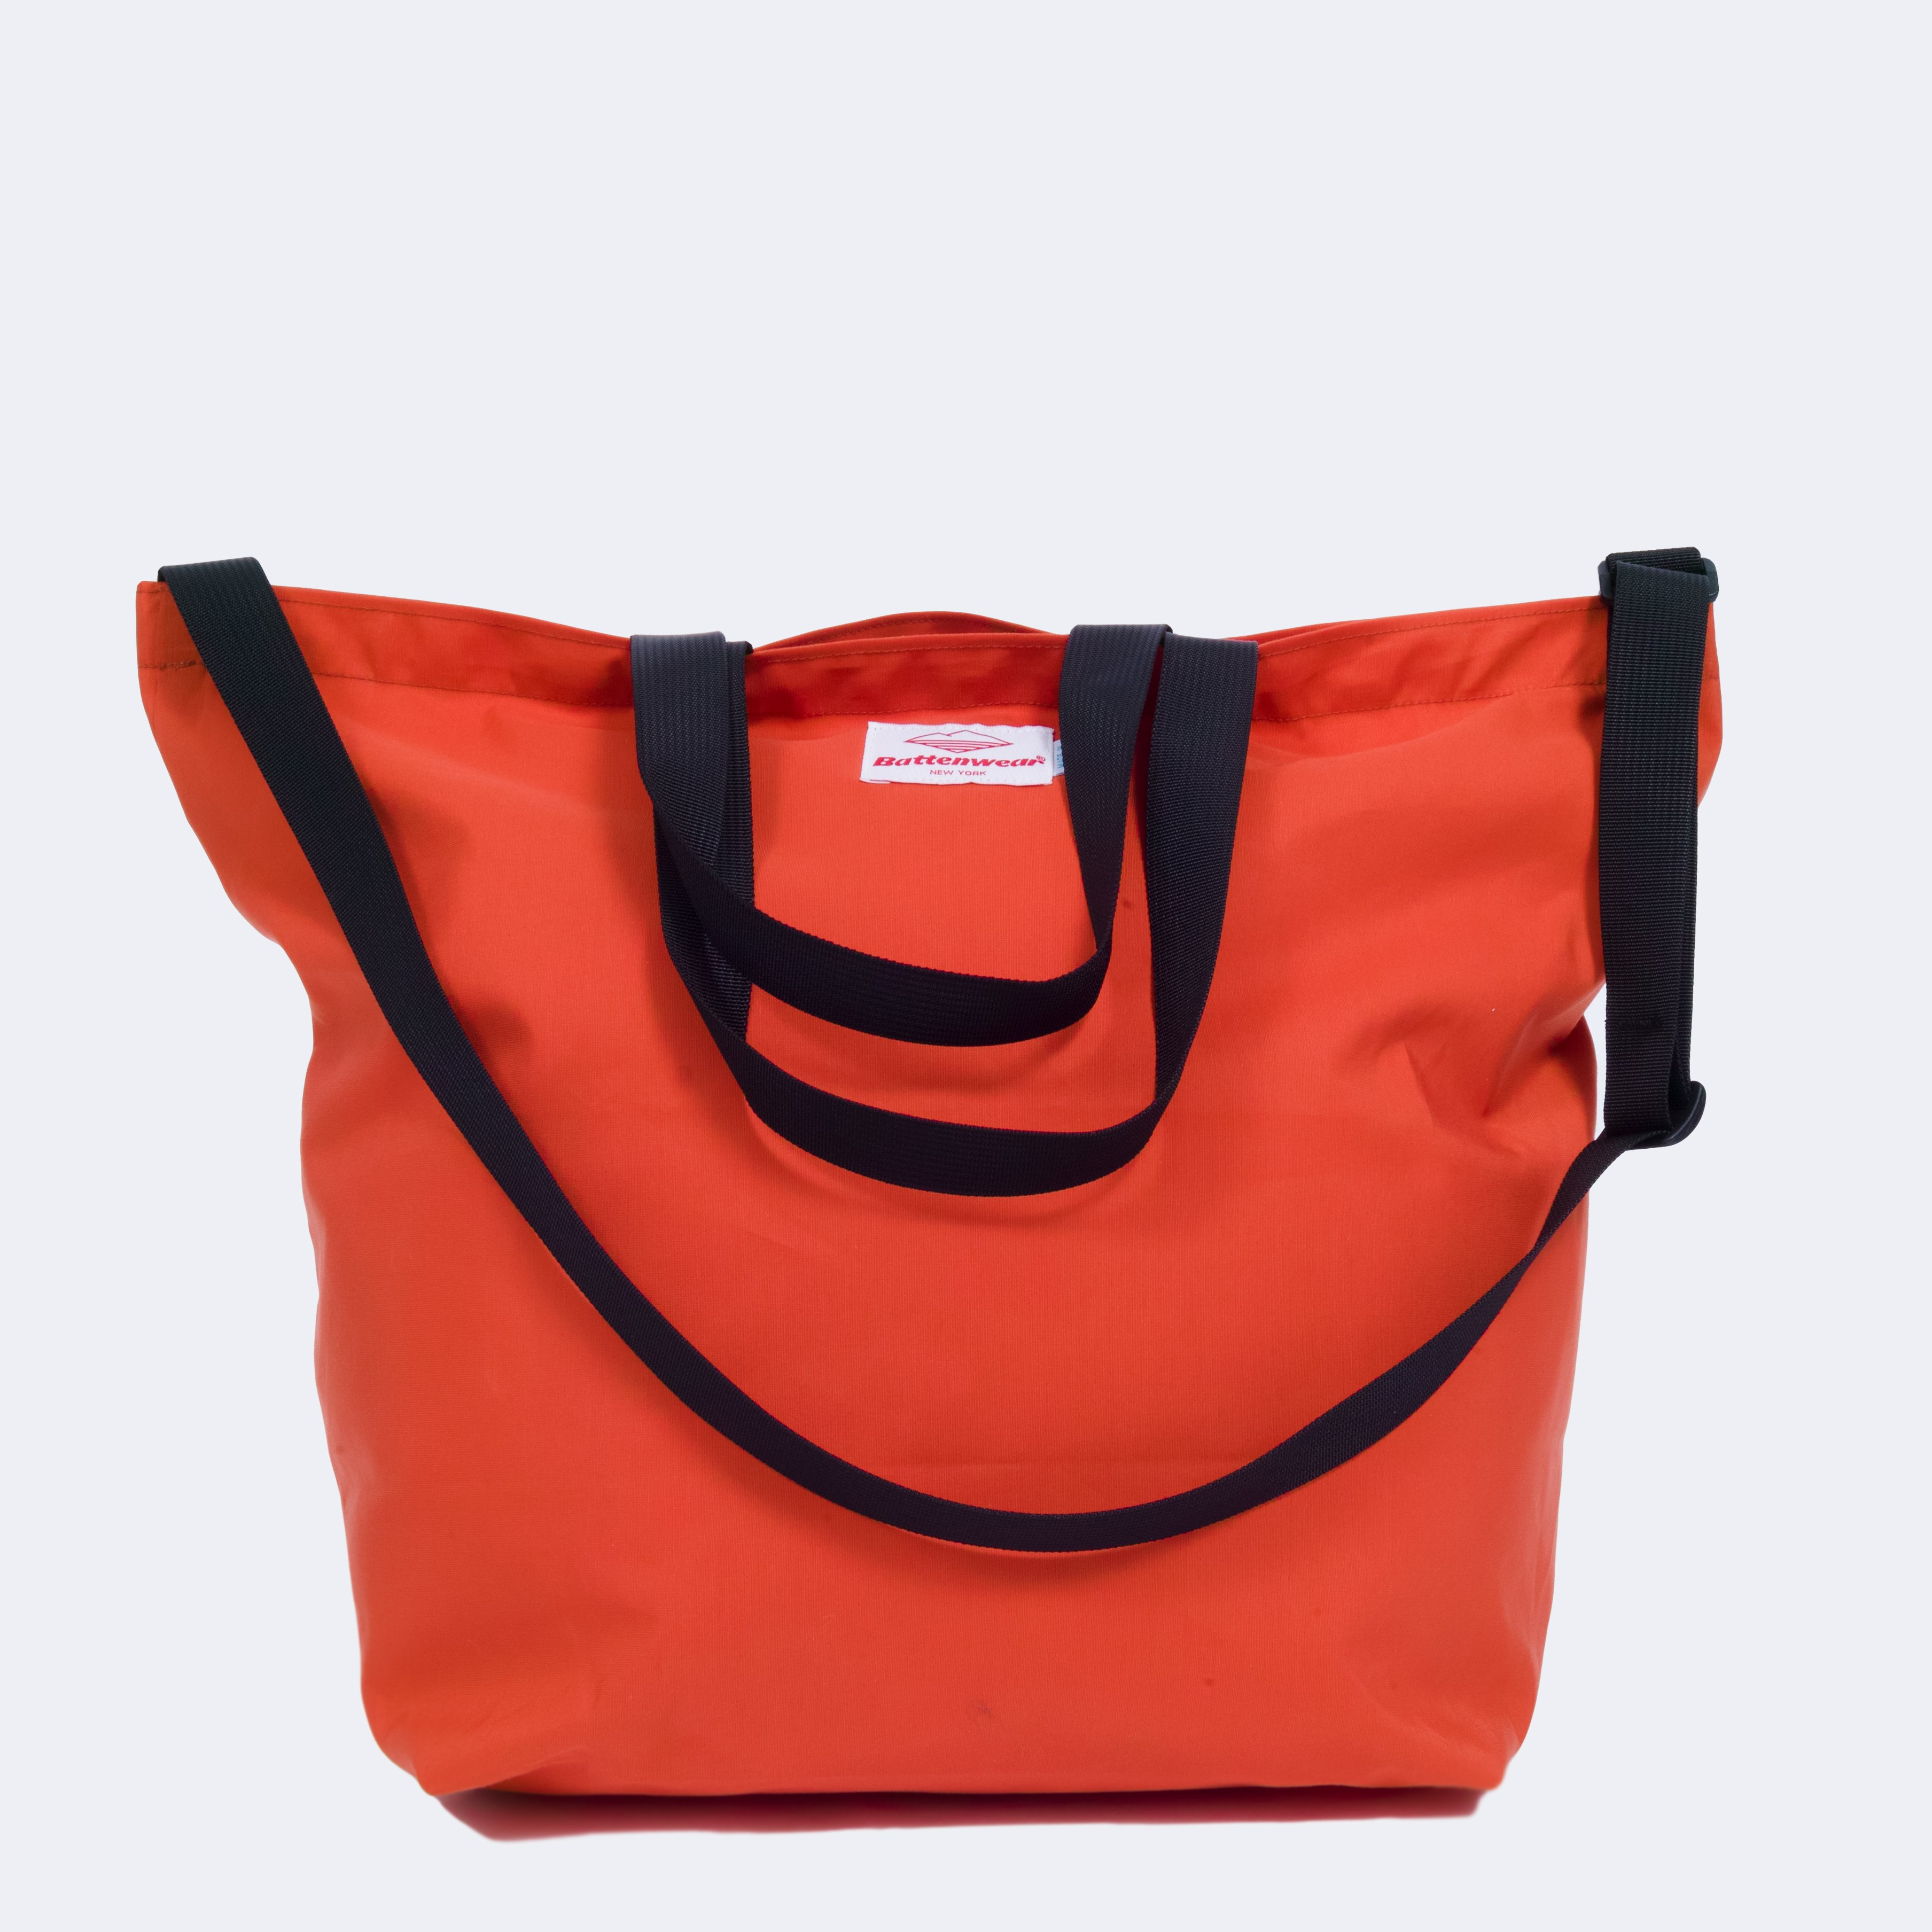 Batten Wear ( バッテンウェア ) /2018FW / PACKABLE TOTE ( パッカブル トート ) / MADE IN USA